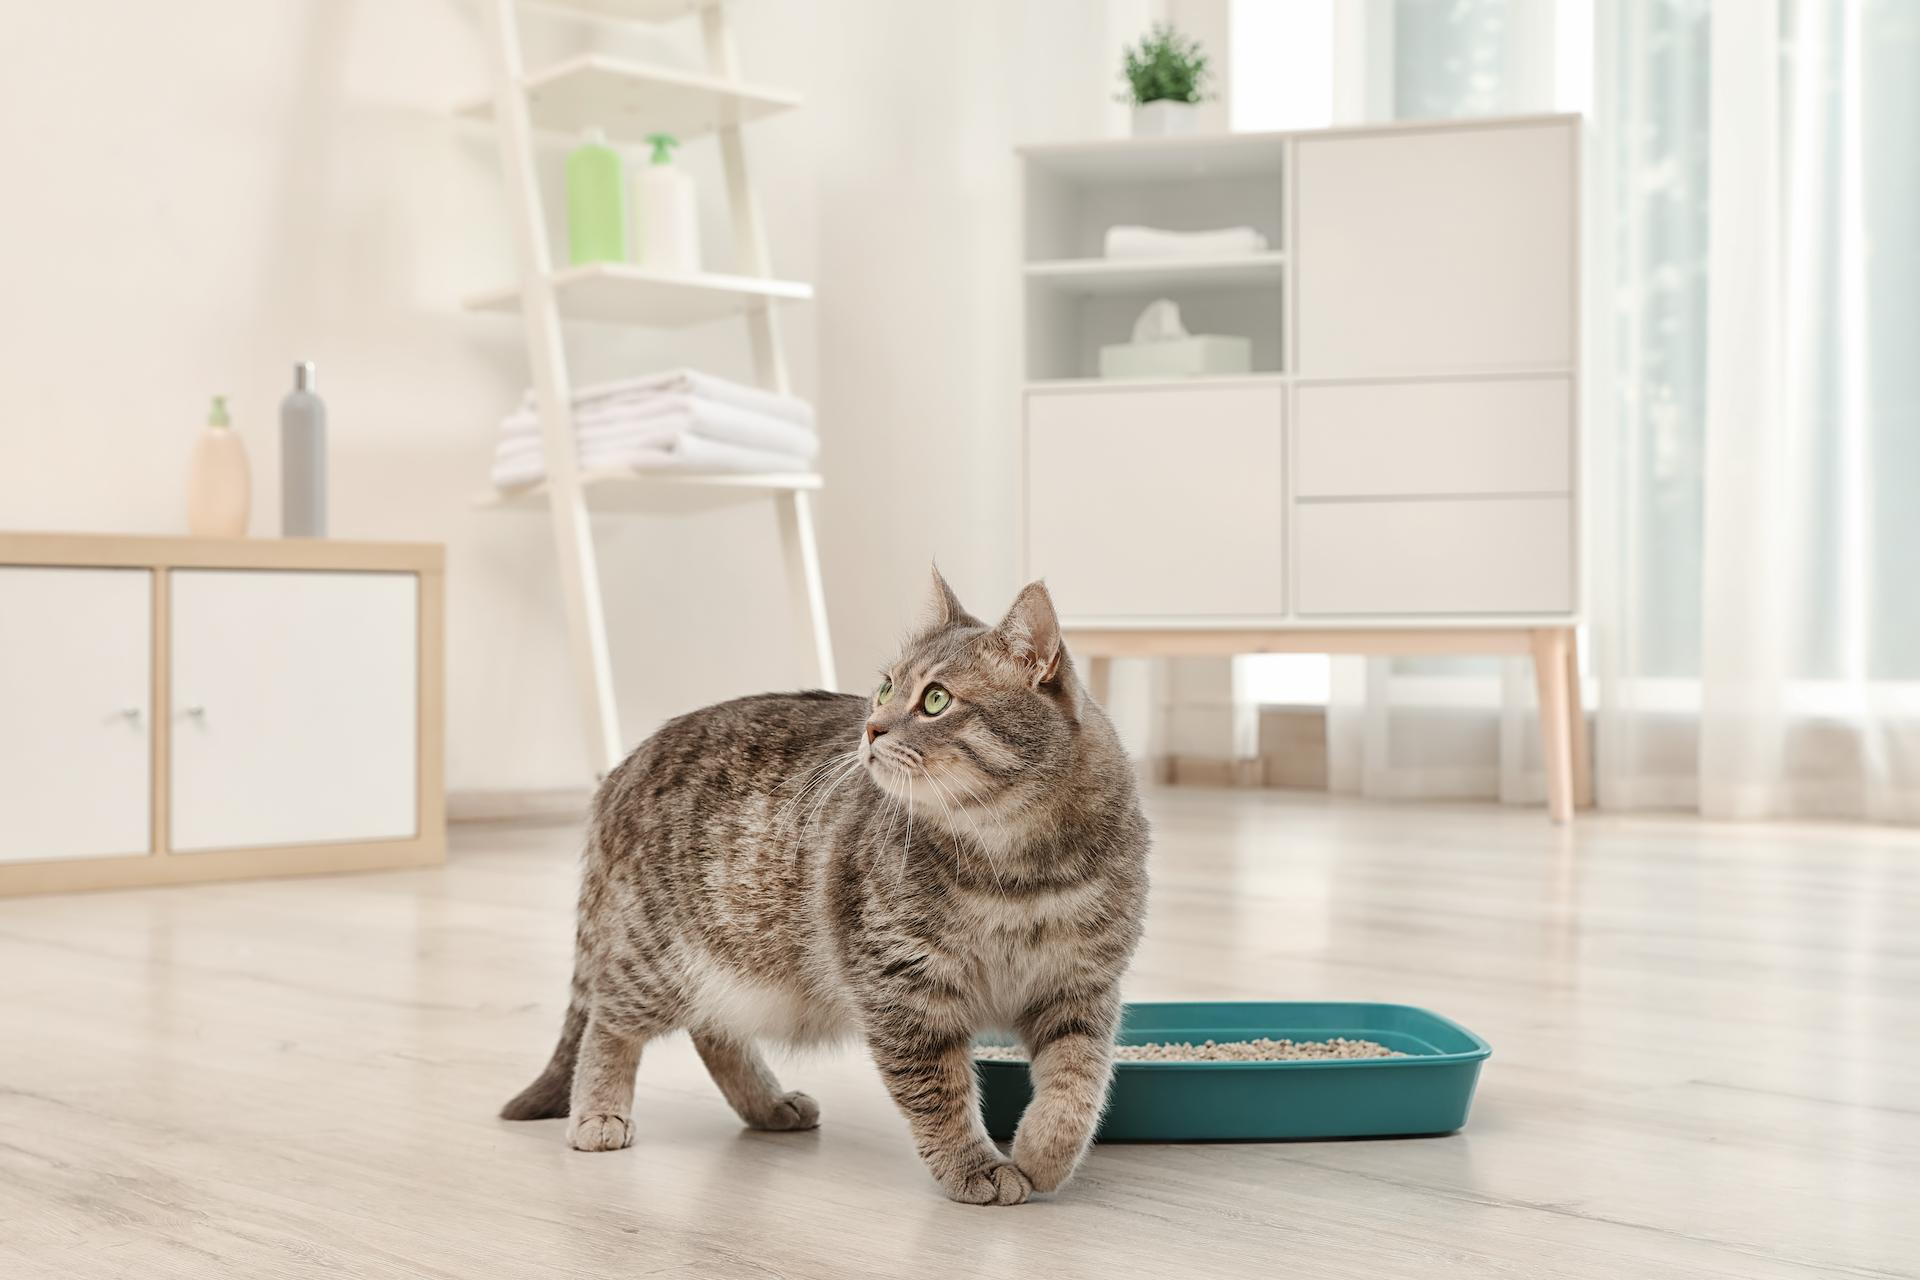 How can I Keep my Cats from Tracking Litter Around the House?